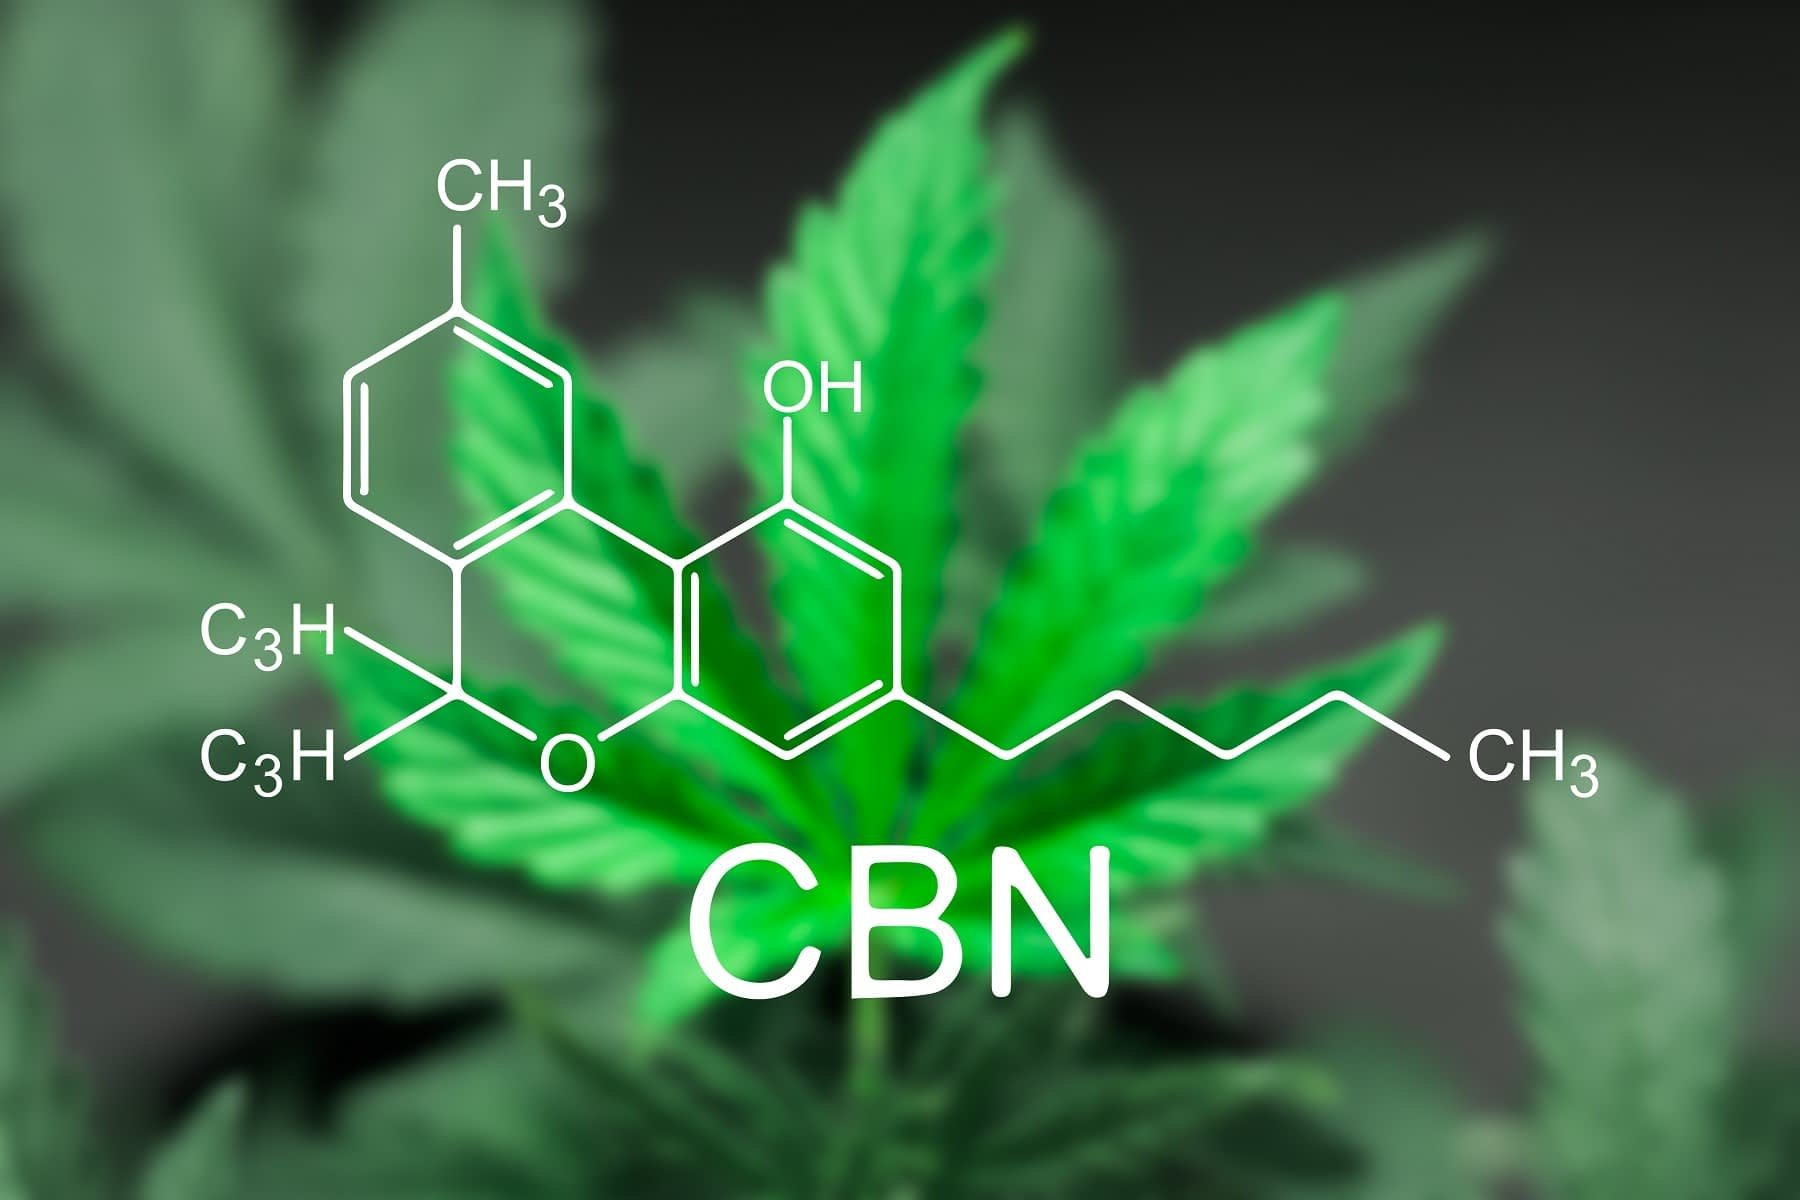 How CBN Works and What it Does - Cannabinol